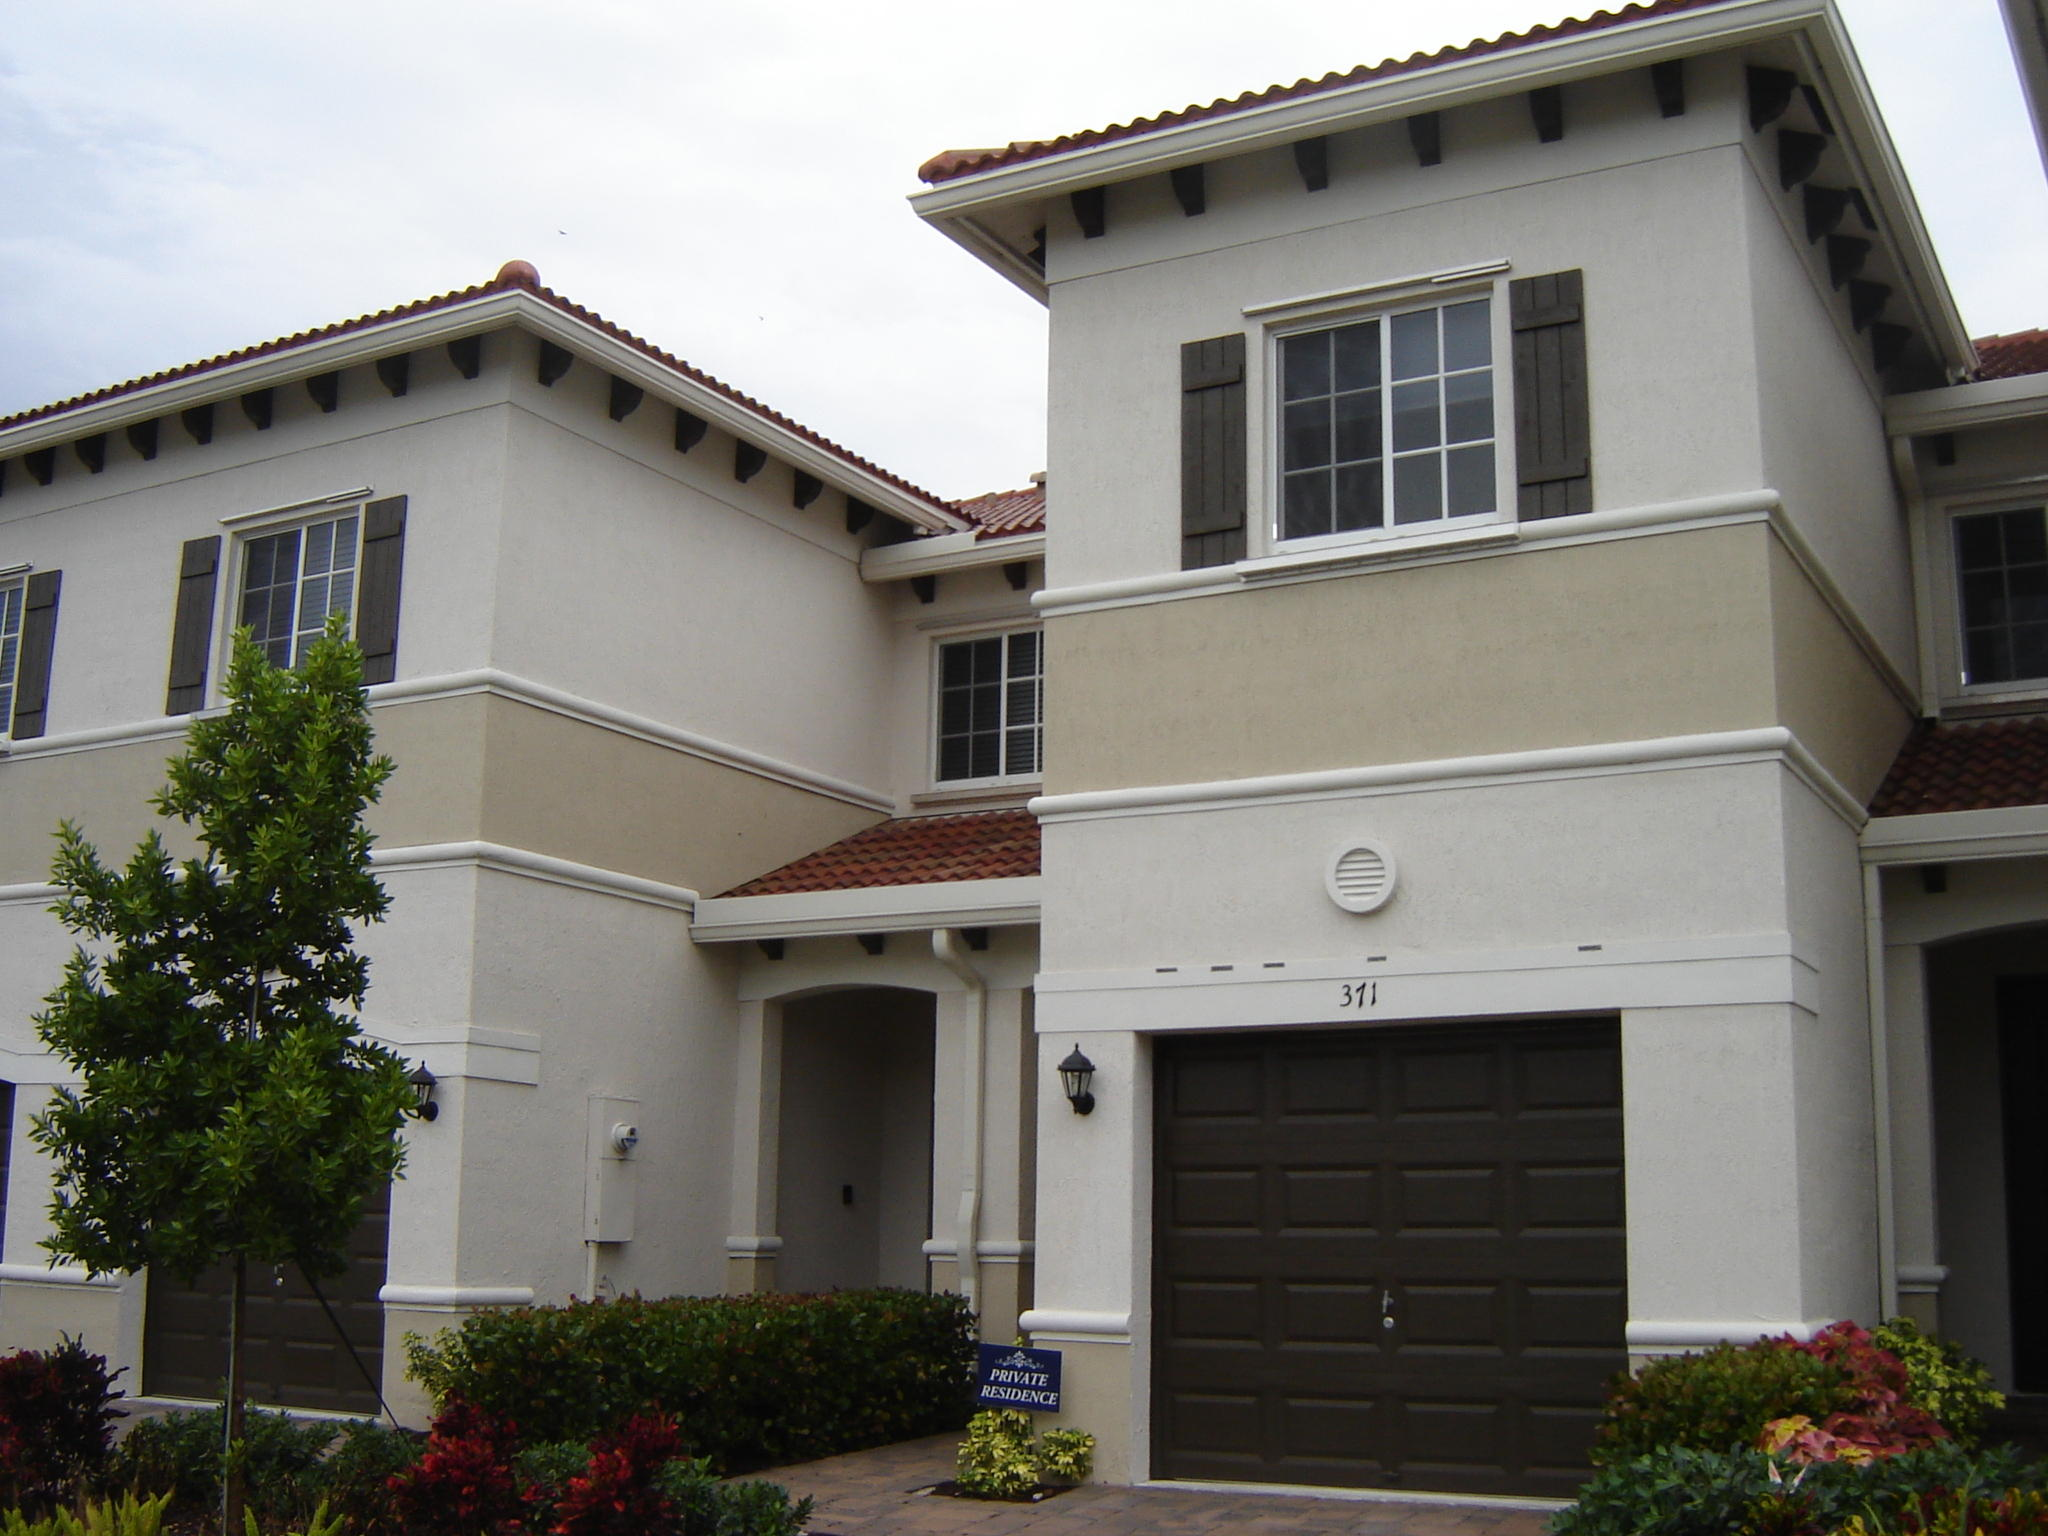 Home for sale in Village Park Deerfield Beach Florida